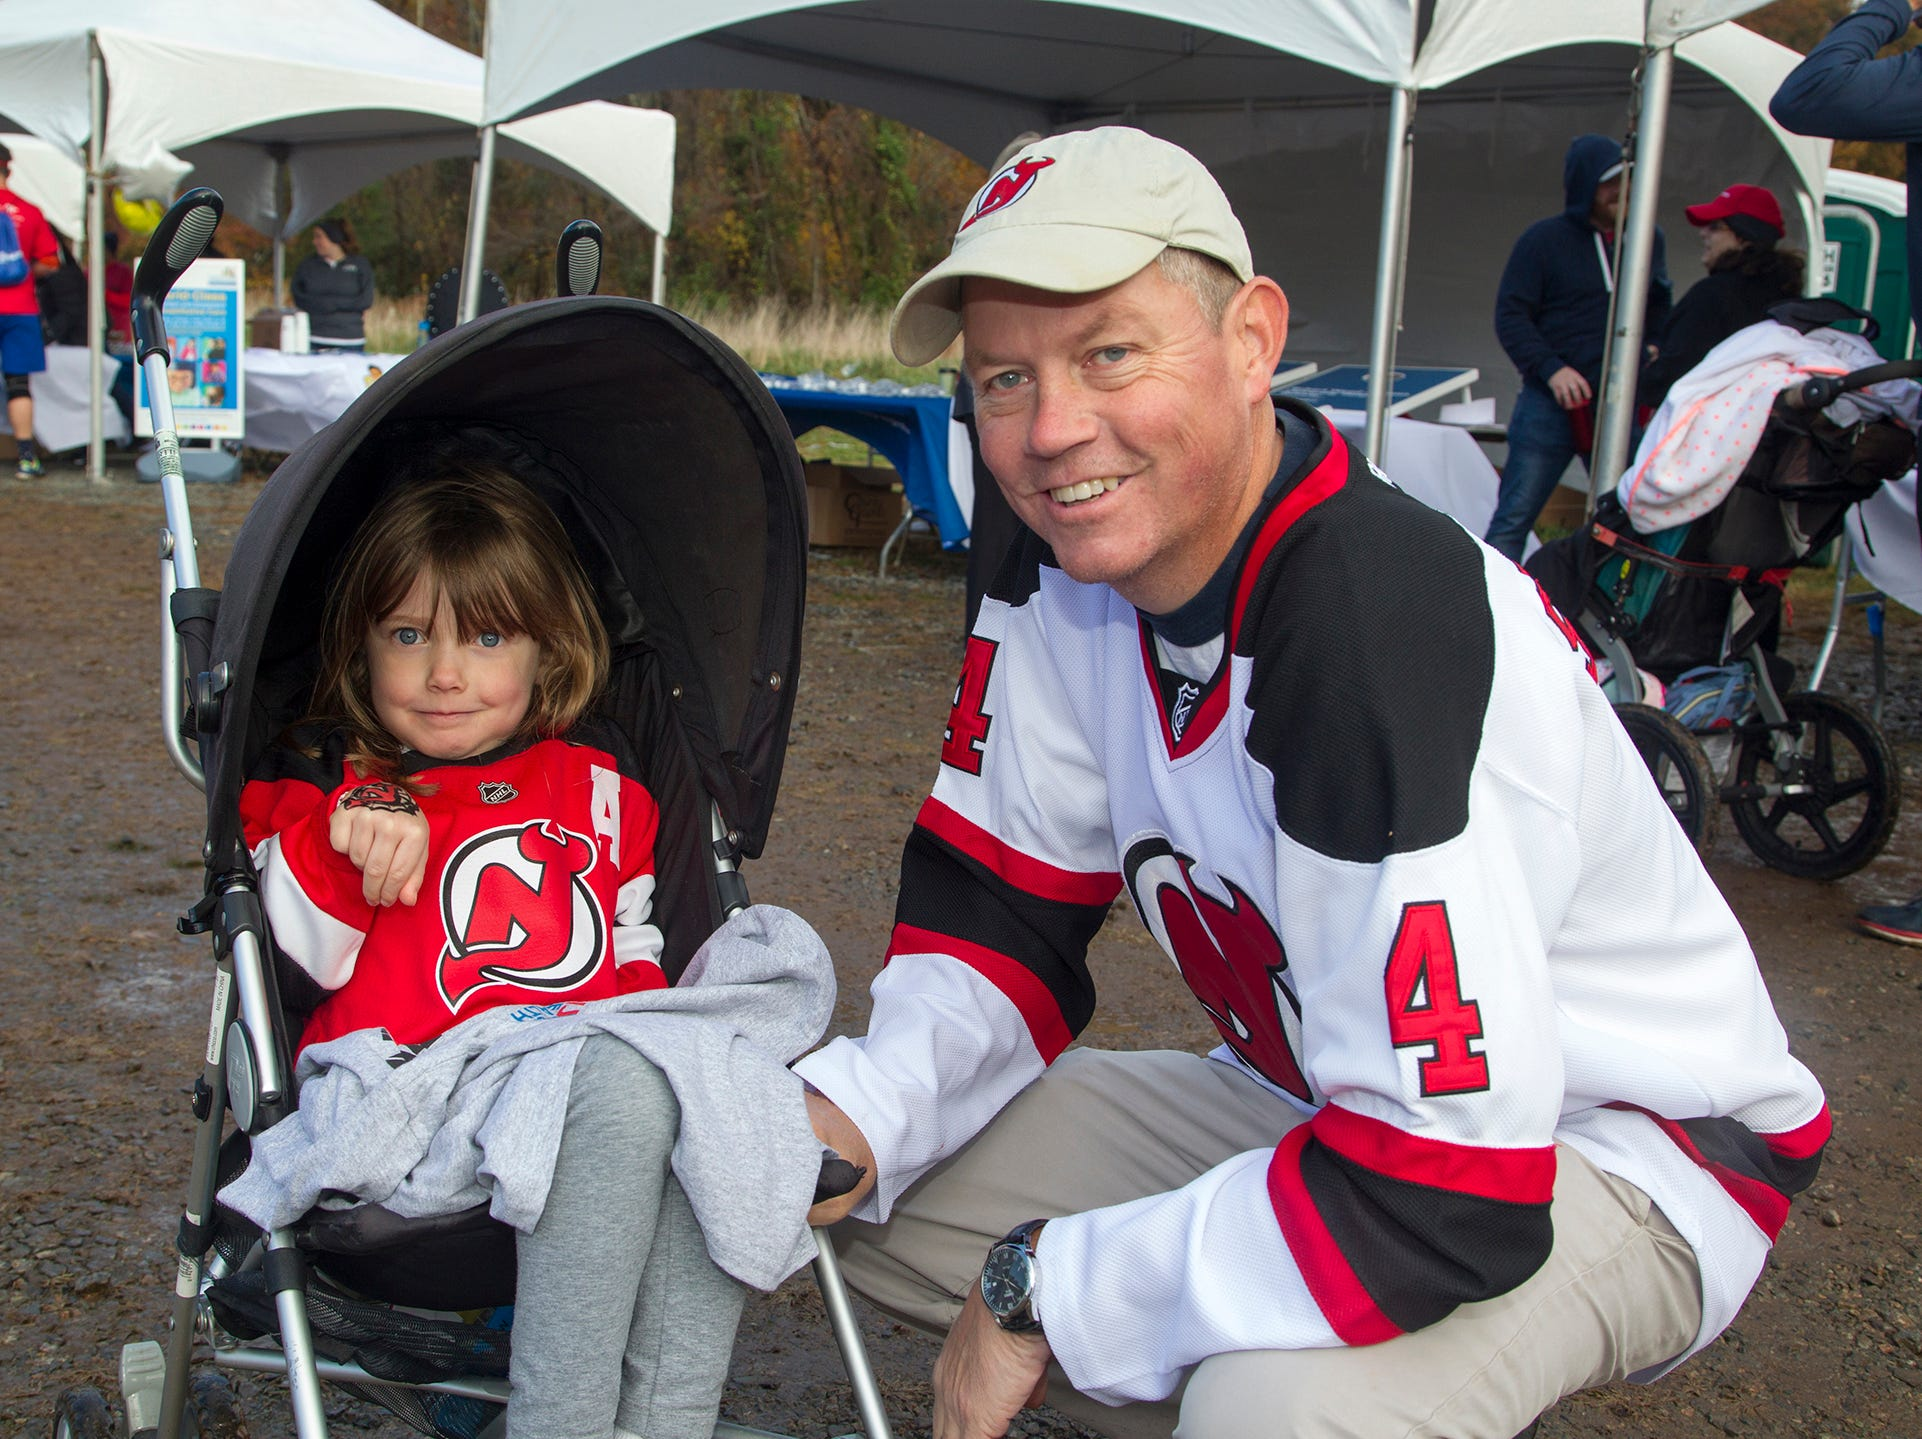 Ava and Bob. RWJBarnabas Health Running with the Devils 5K Run and Family Fun Walk at South Mountain Recreation in West Orange. 10/03/2018